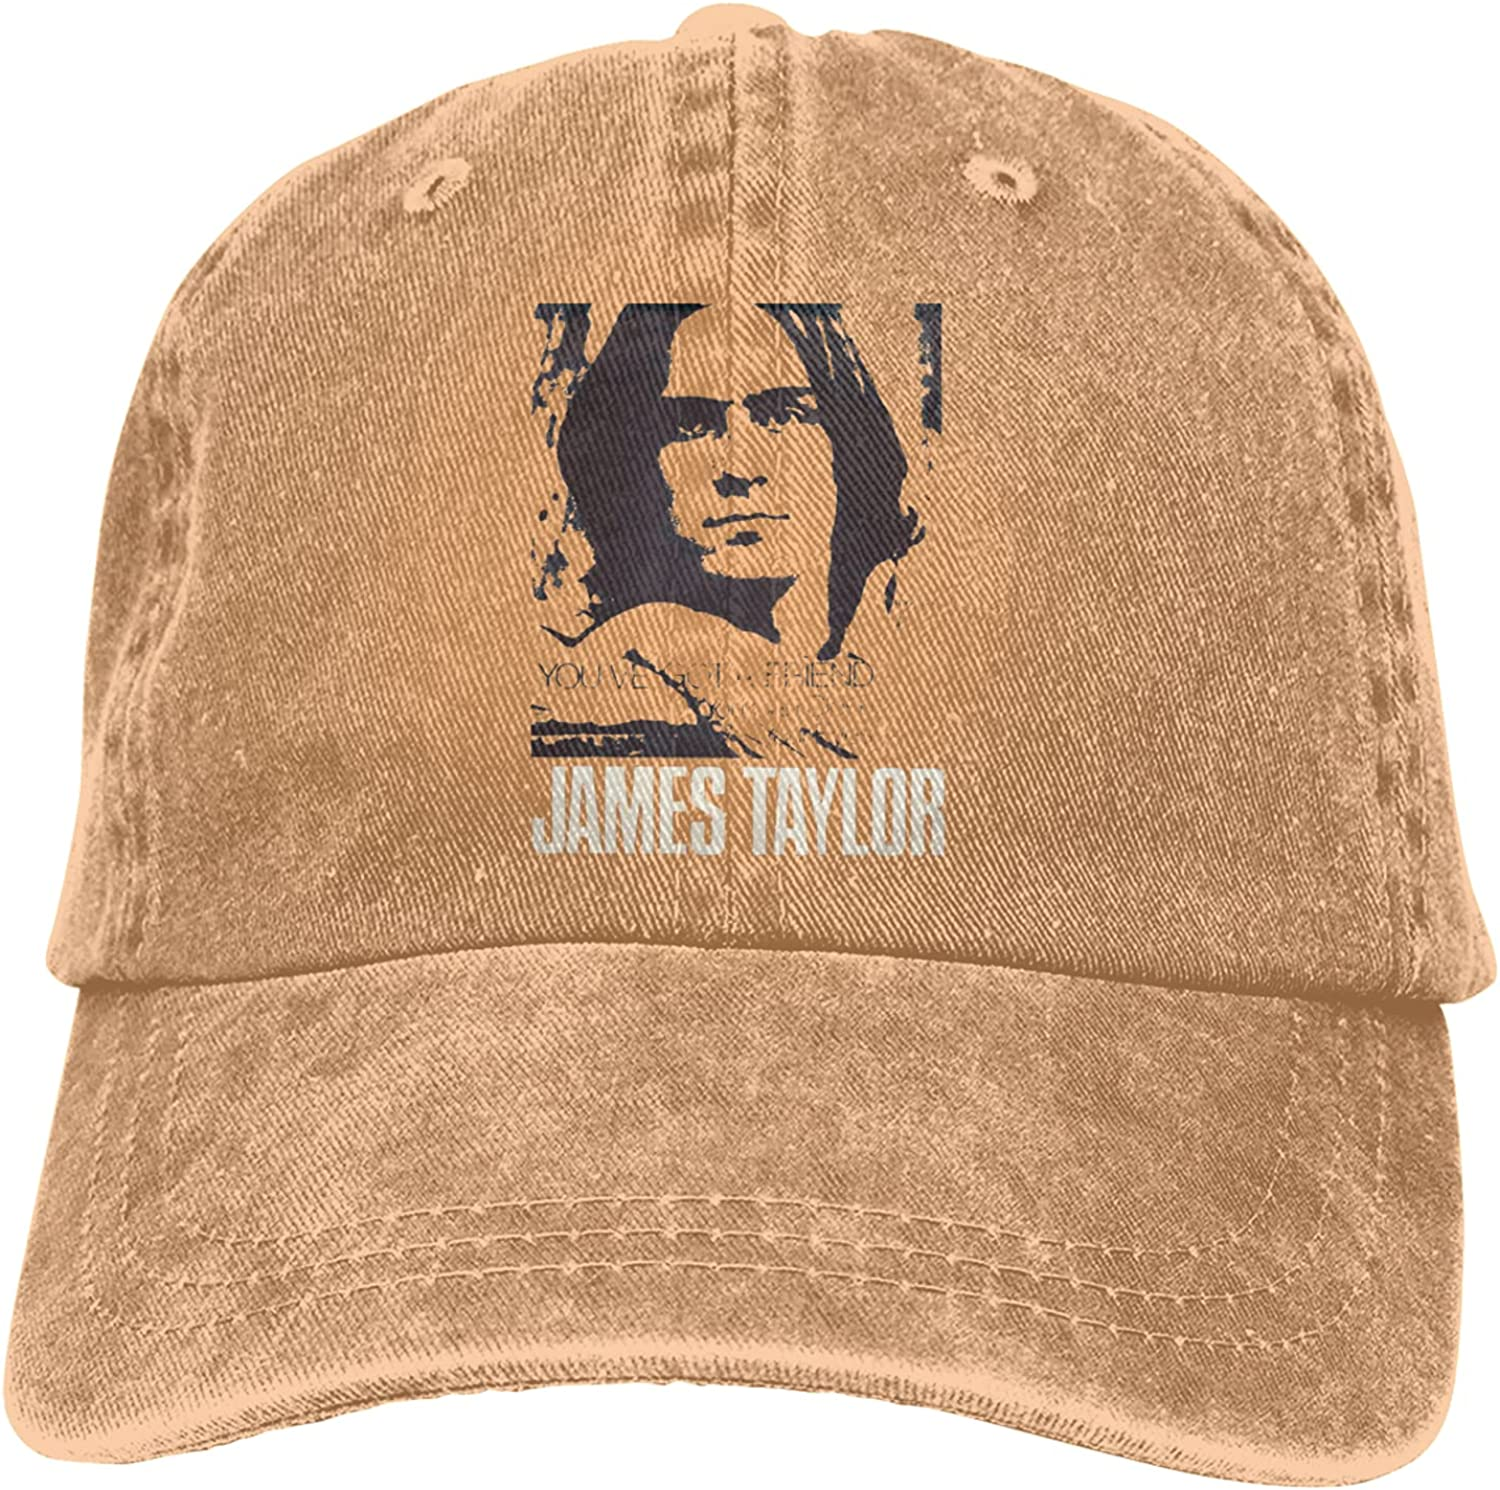 Unisex Baseball Hat Peaked Caps James Taylor Cowboy Hats for Men and Women Gray